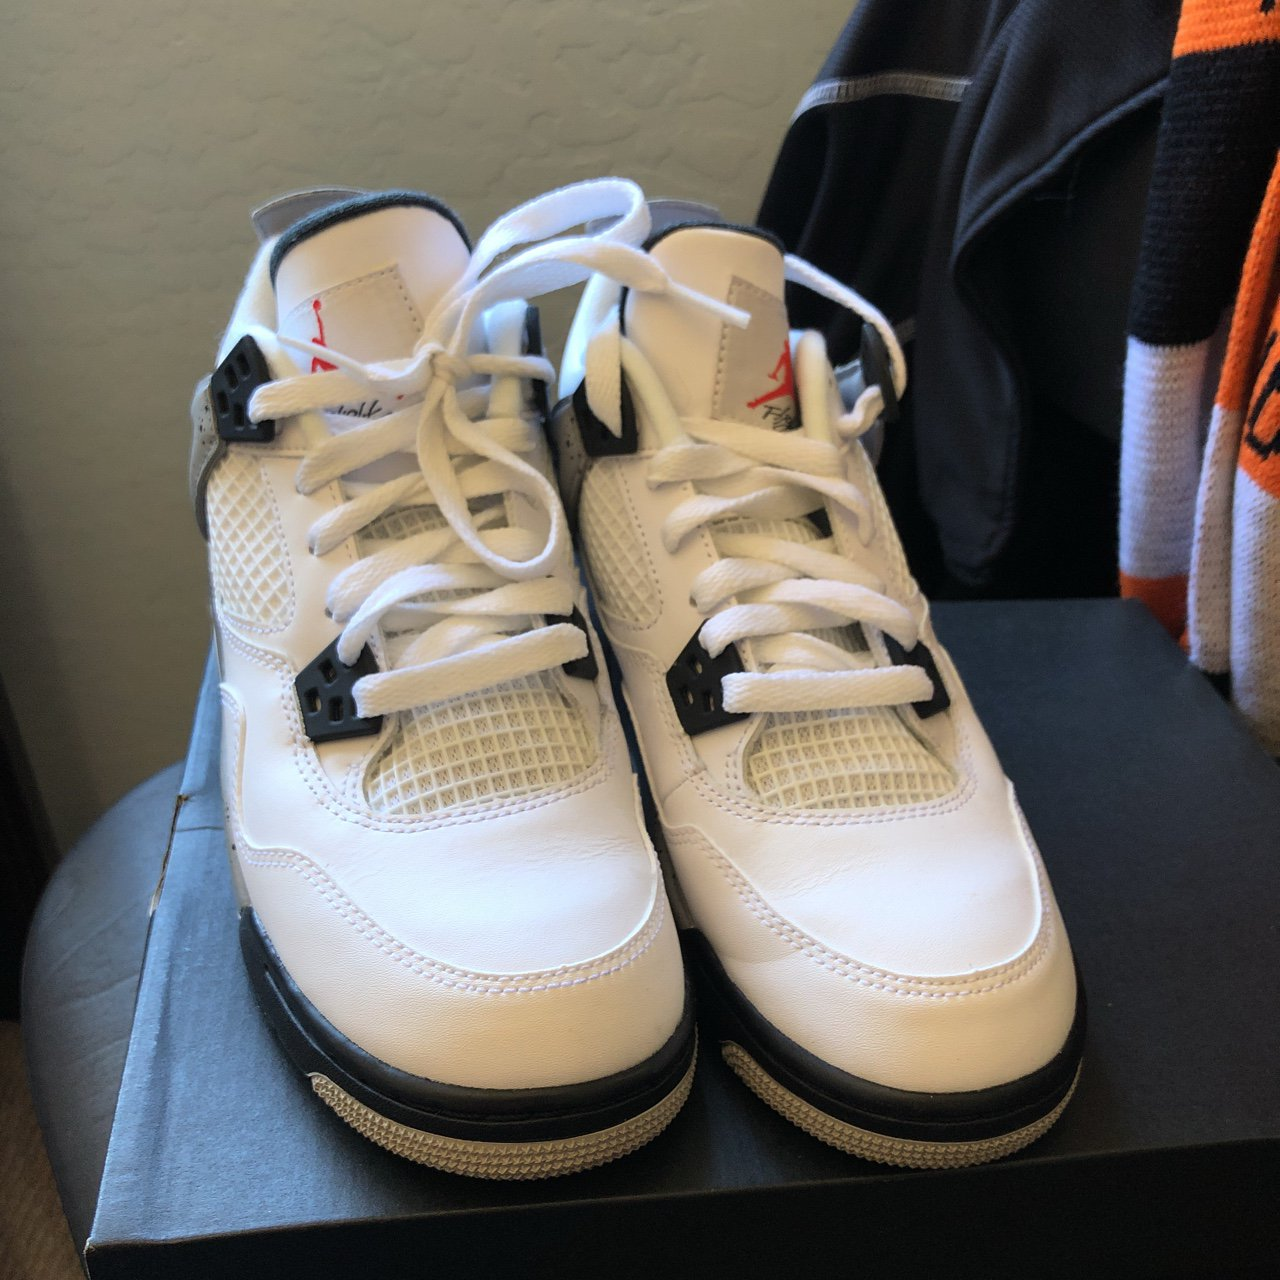 1ce16891213 Air Jordan white cement 4s. I forget what year i got them